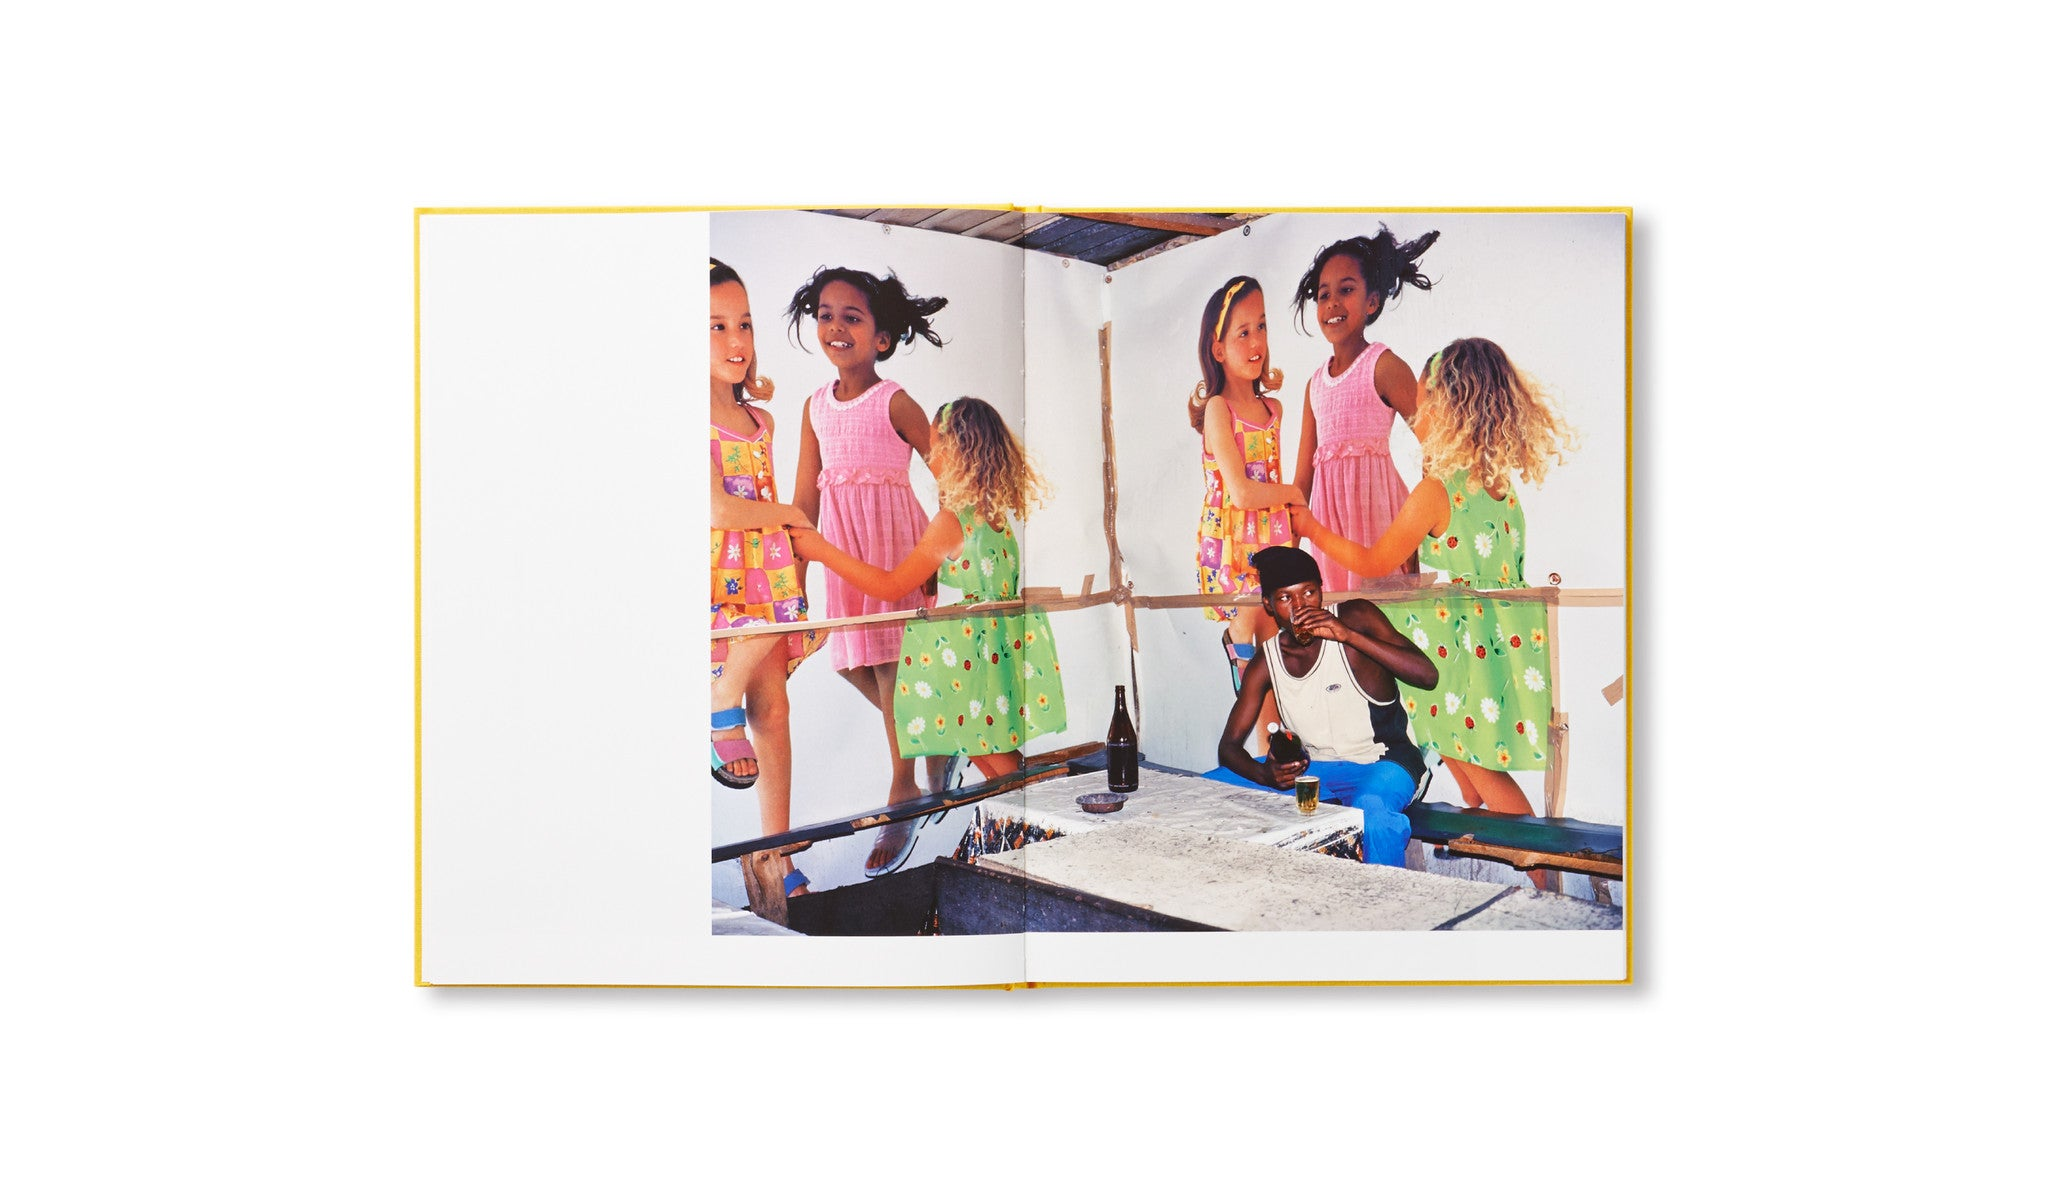 DIE SON SIEN ALLES by Viviane Sassen [SECOND EDITION]